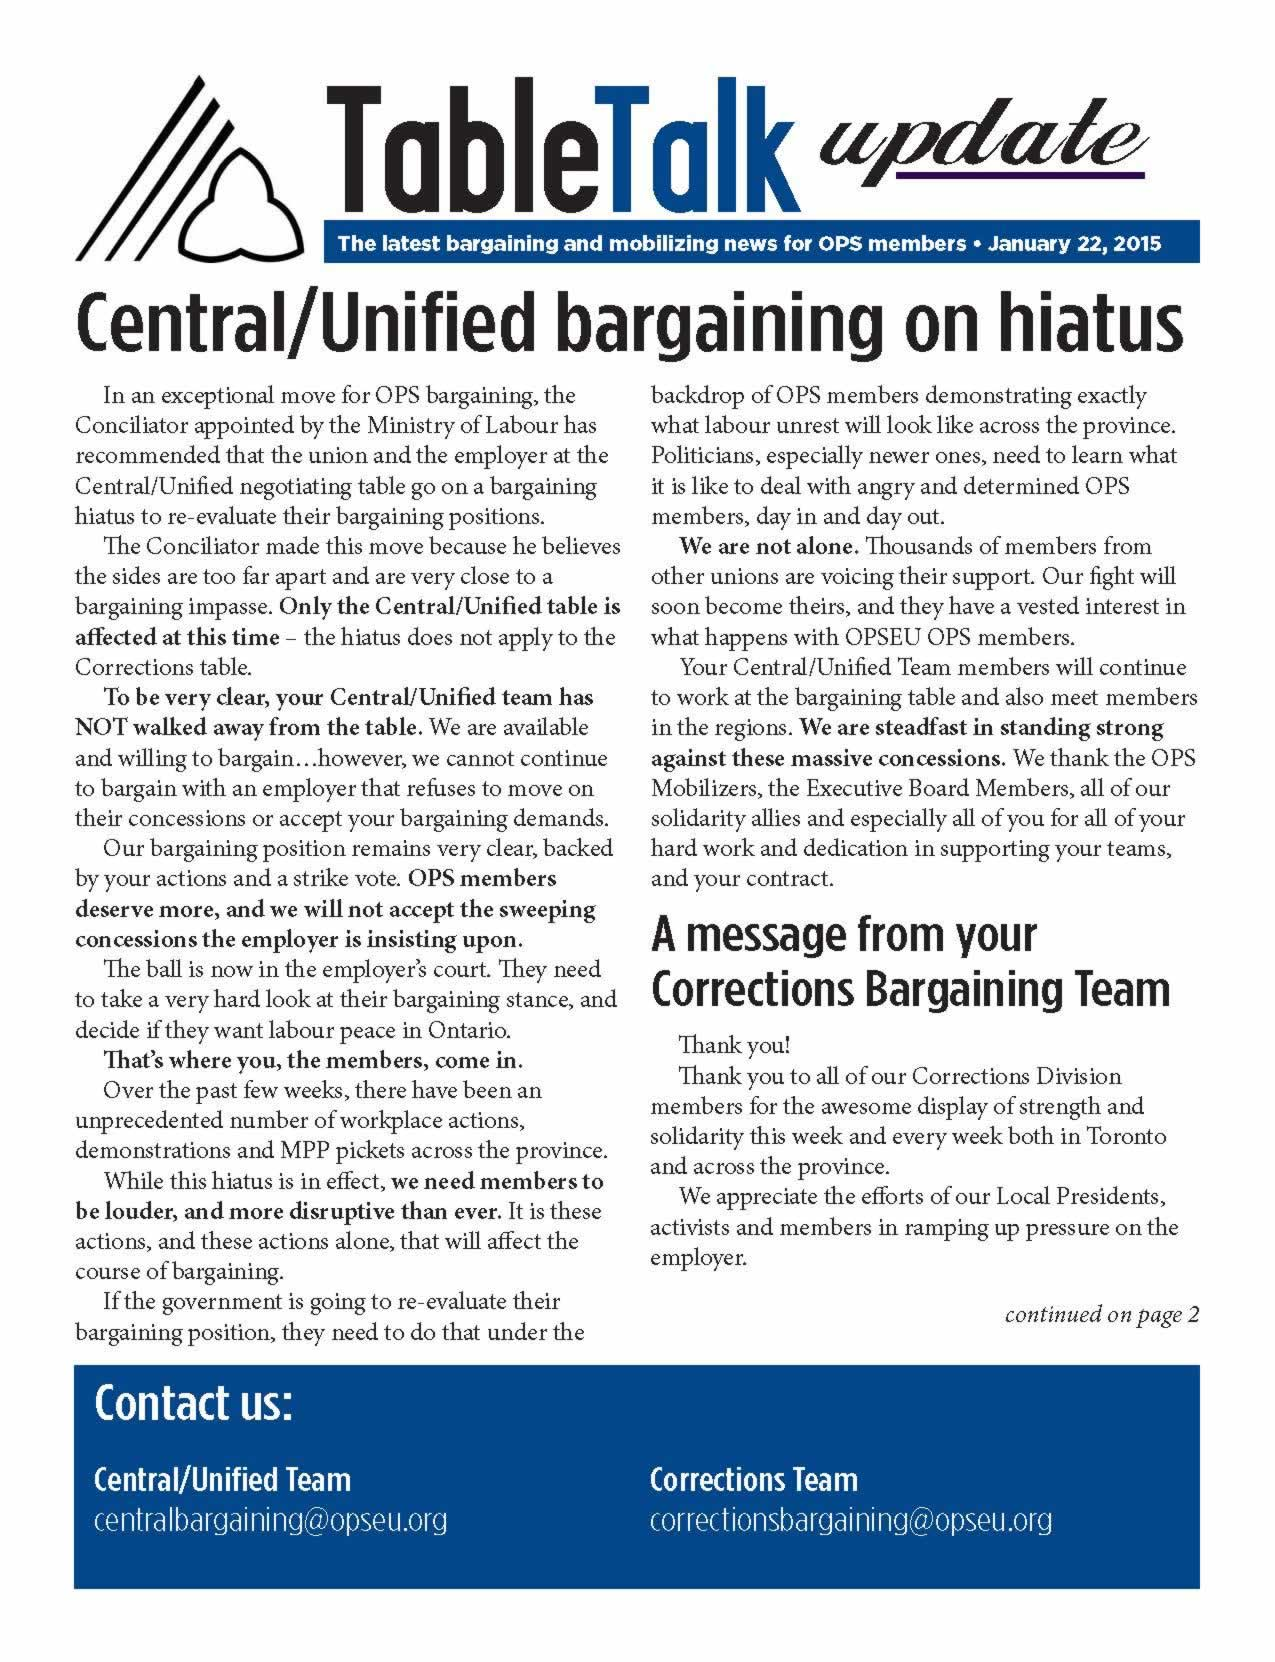 Table Talk Update: Central/Unified bargaining on hiatus